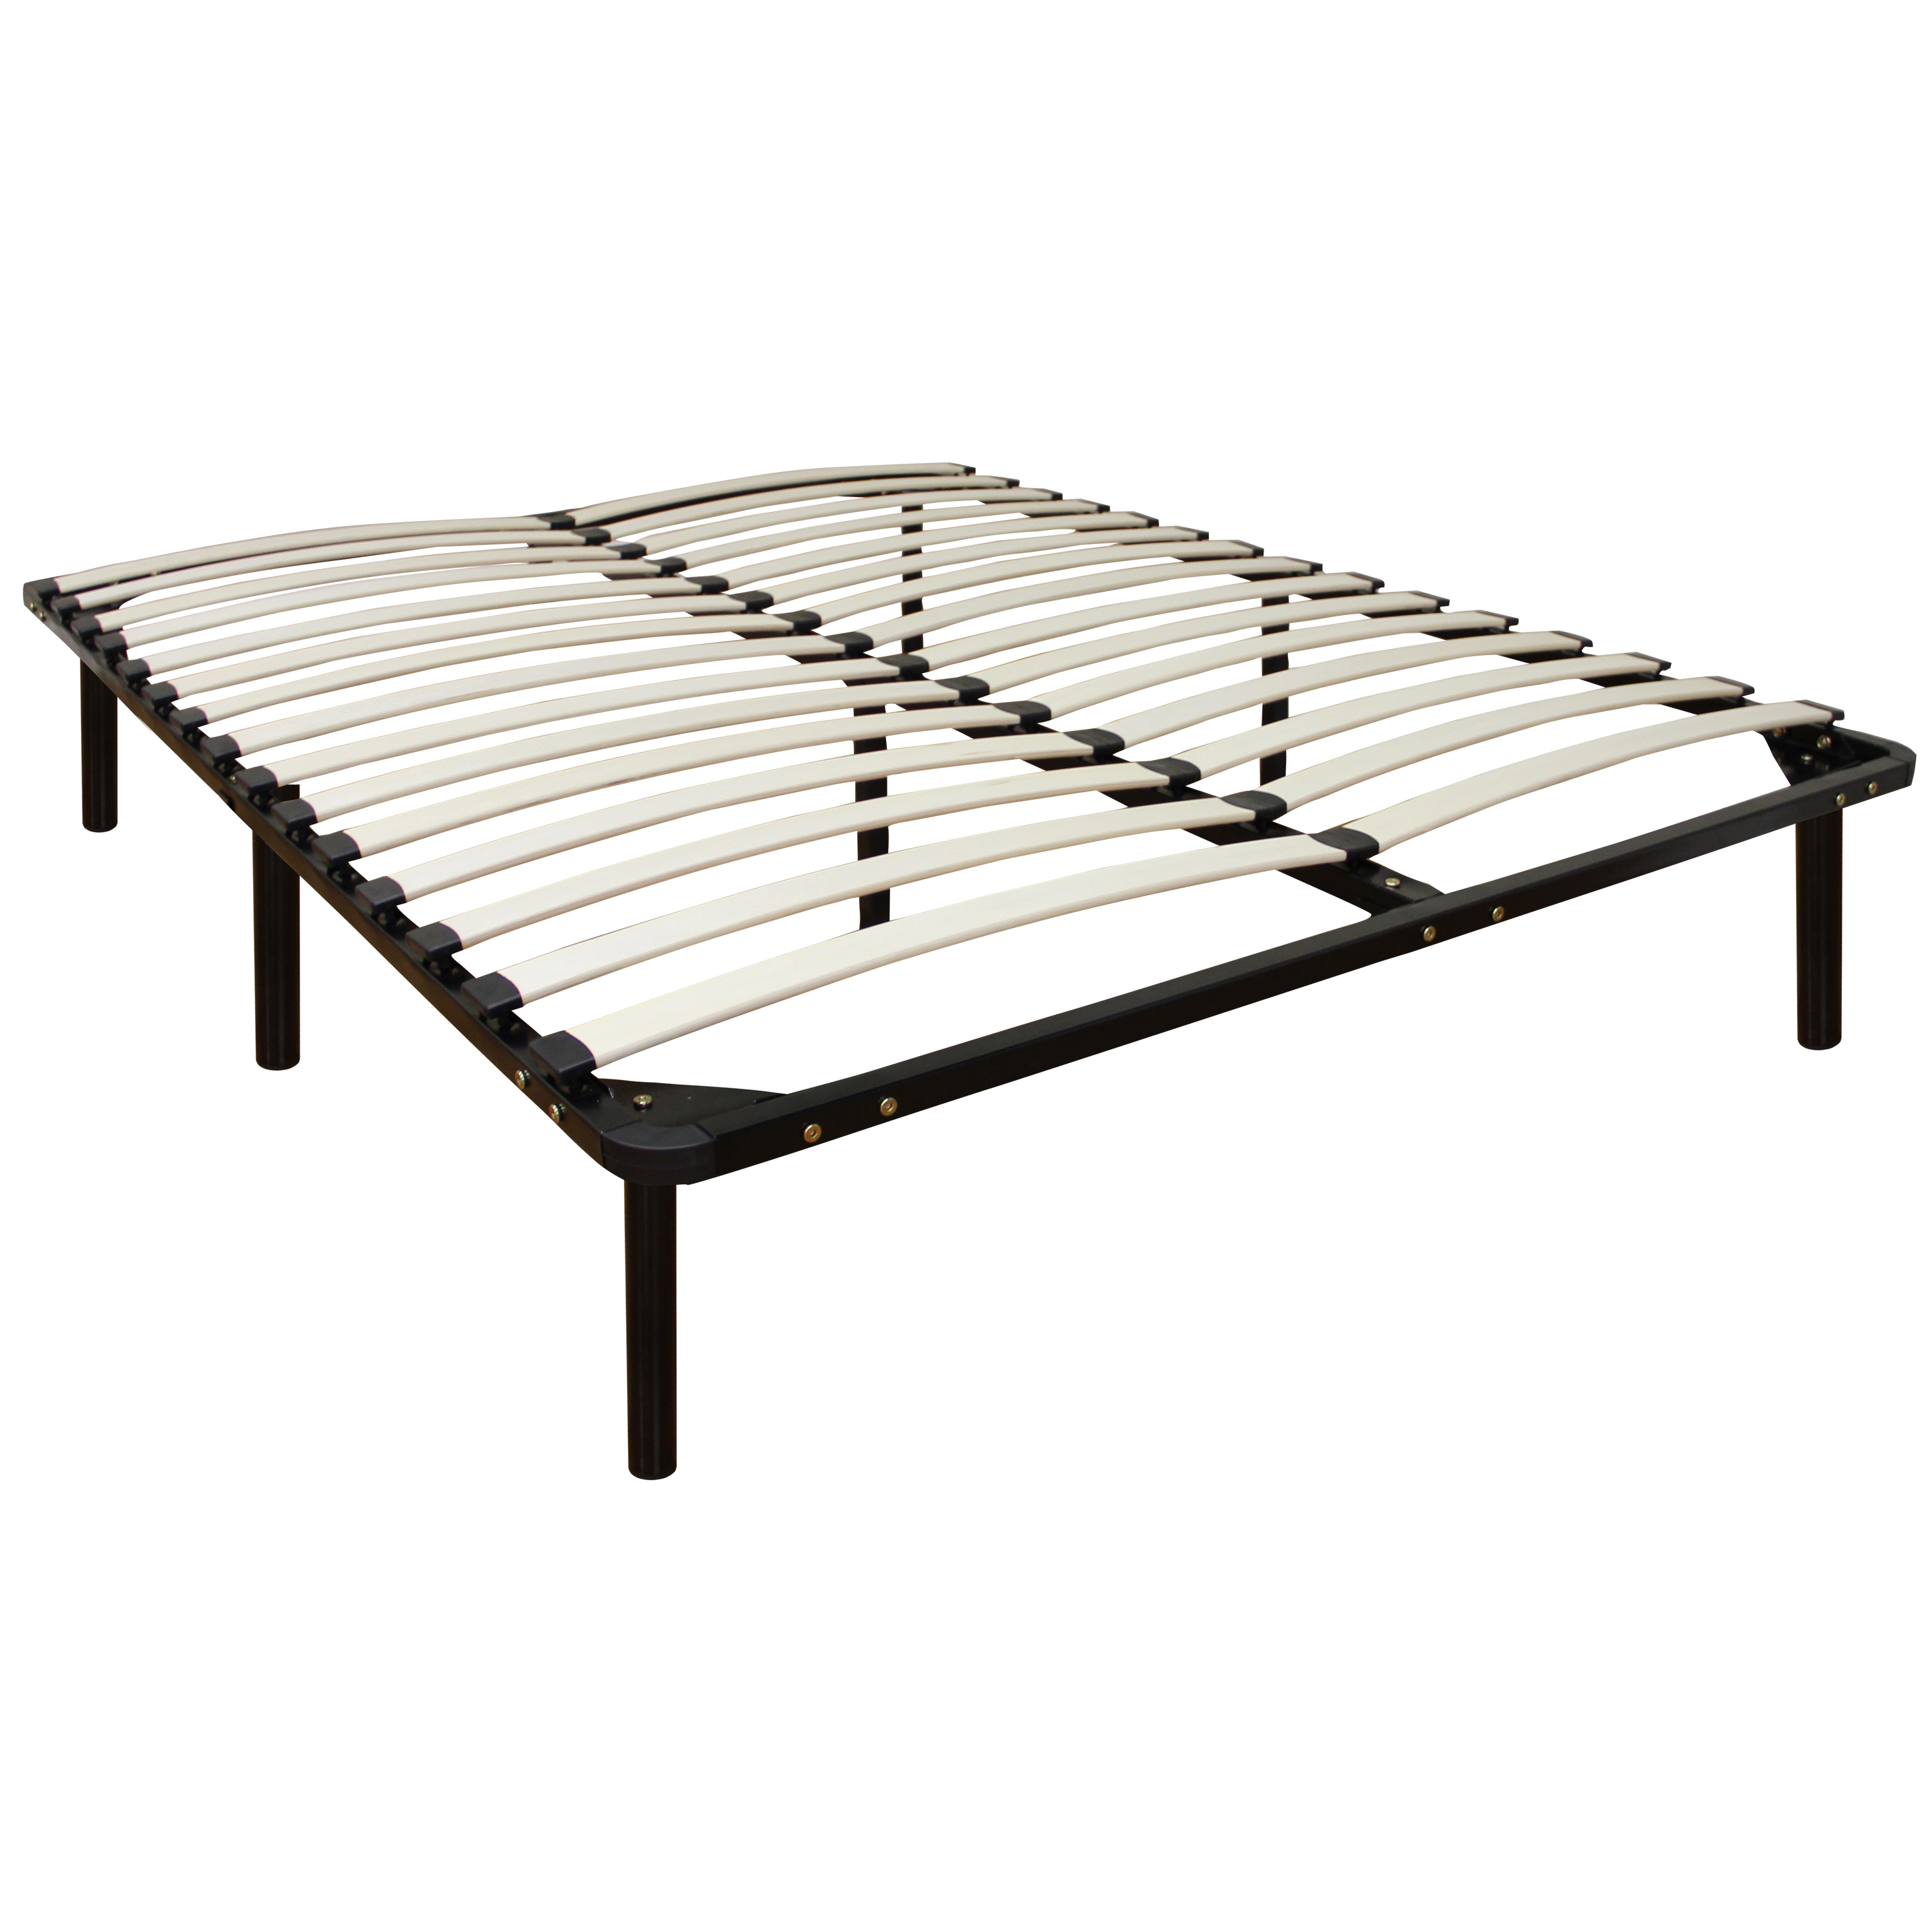 Modern Sleep Europa Wood Slat and Metal Platform Bed Frame | Mattress Foundation, Multiple Sizes